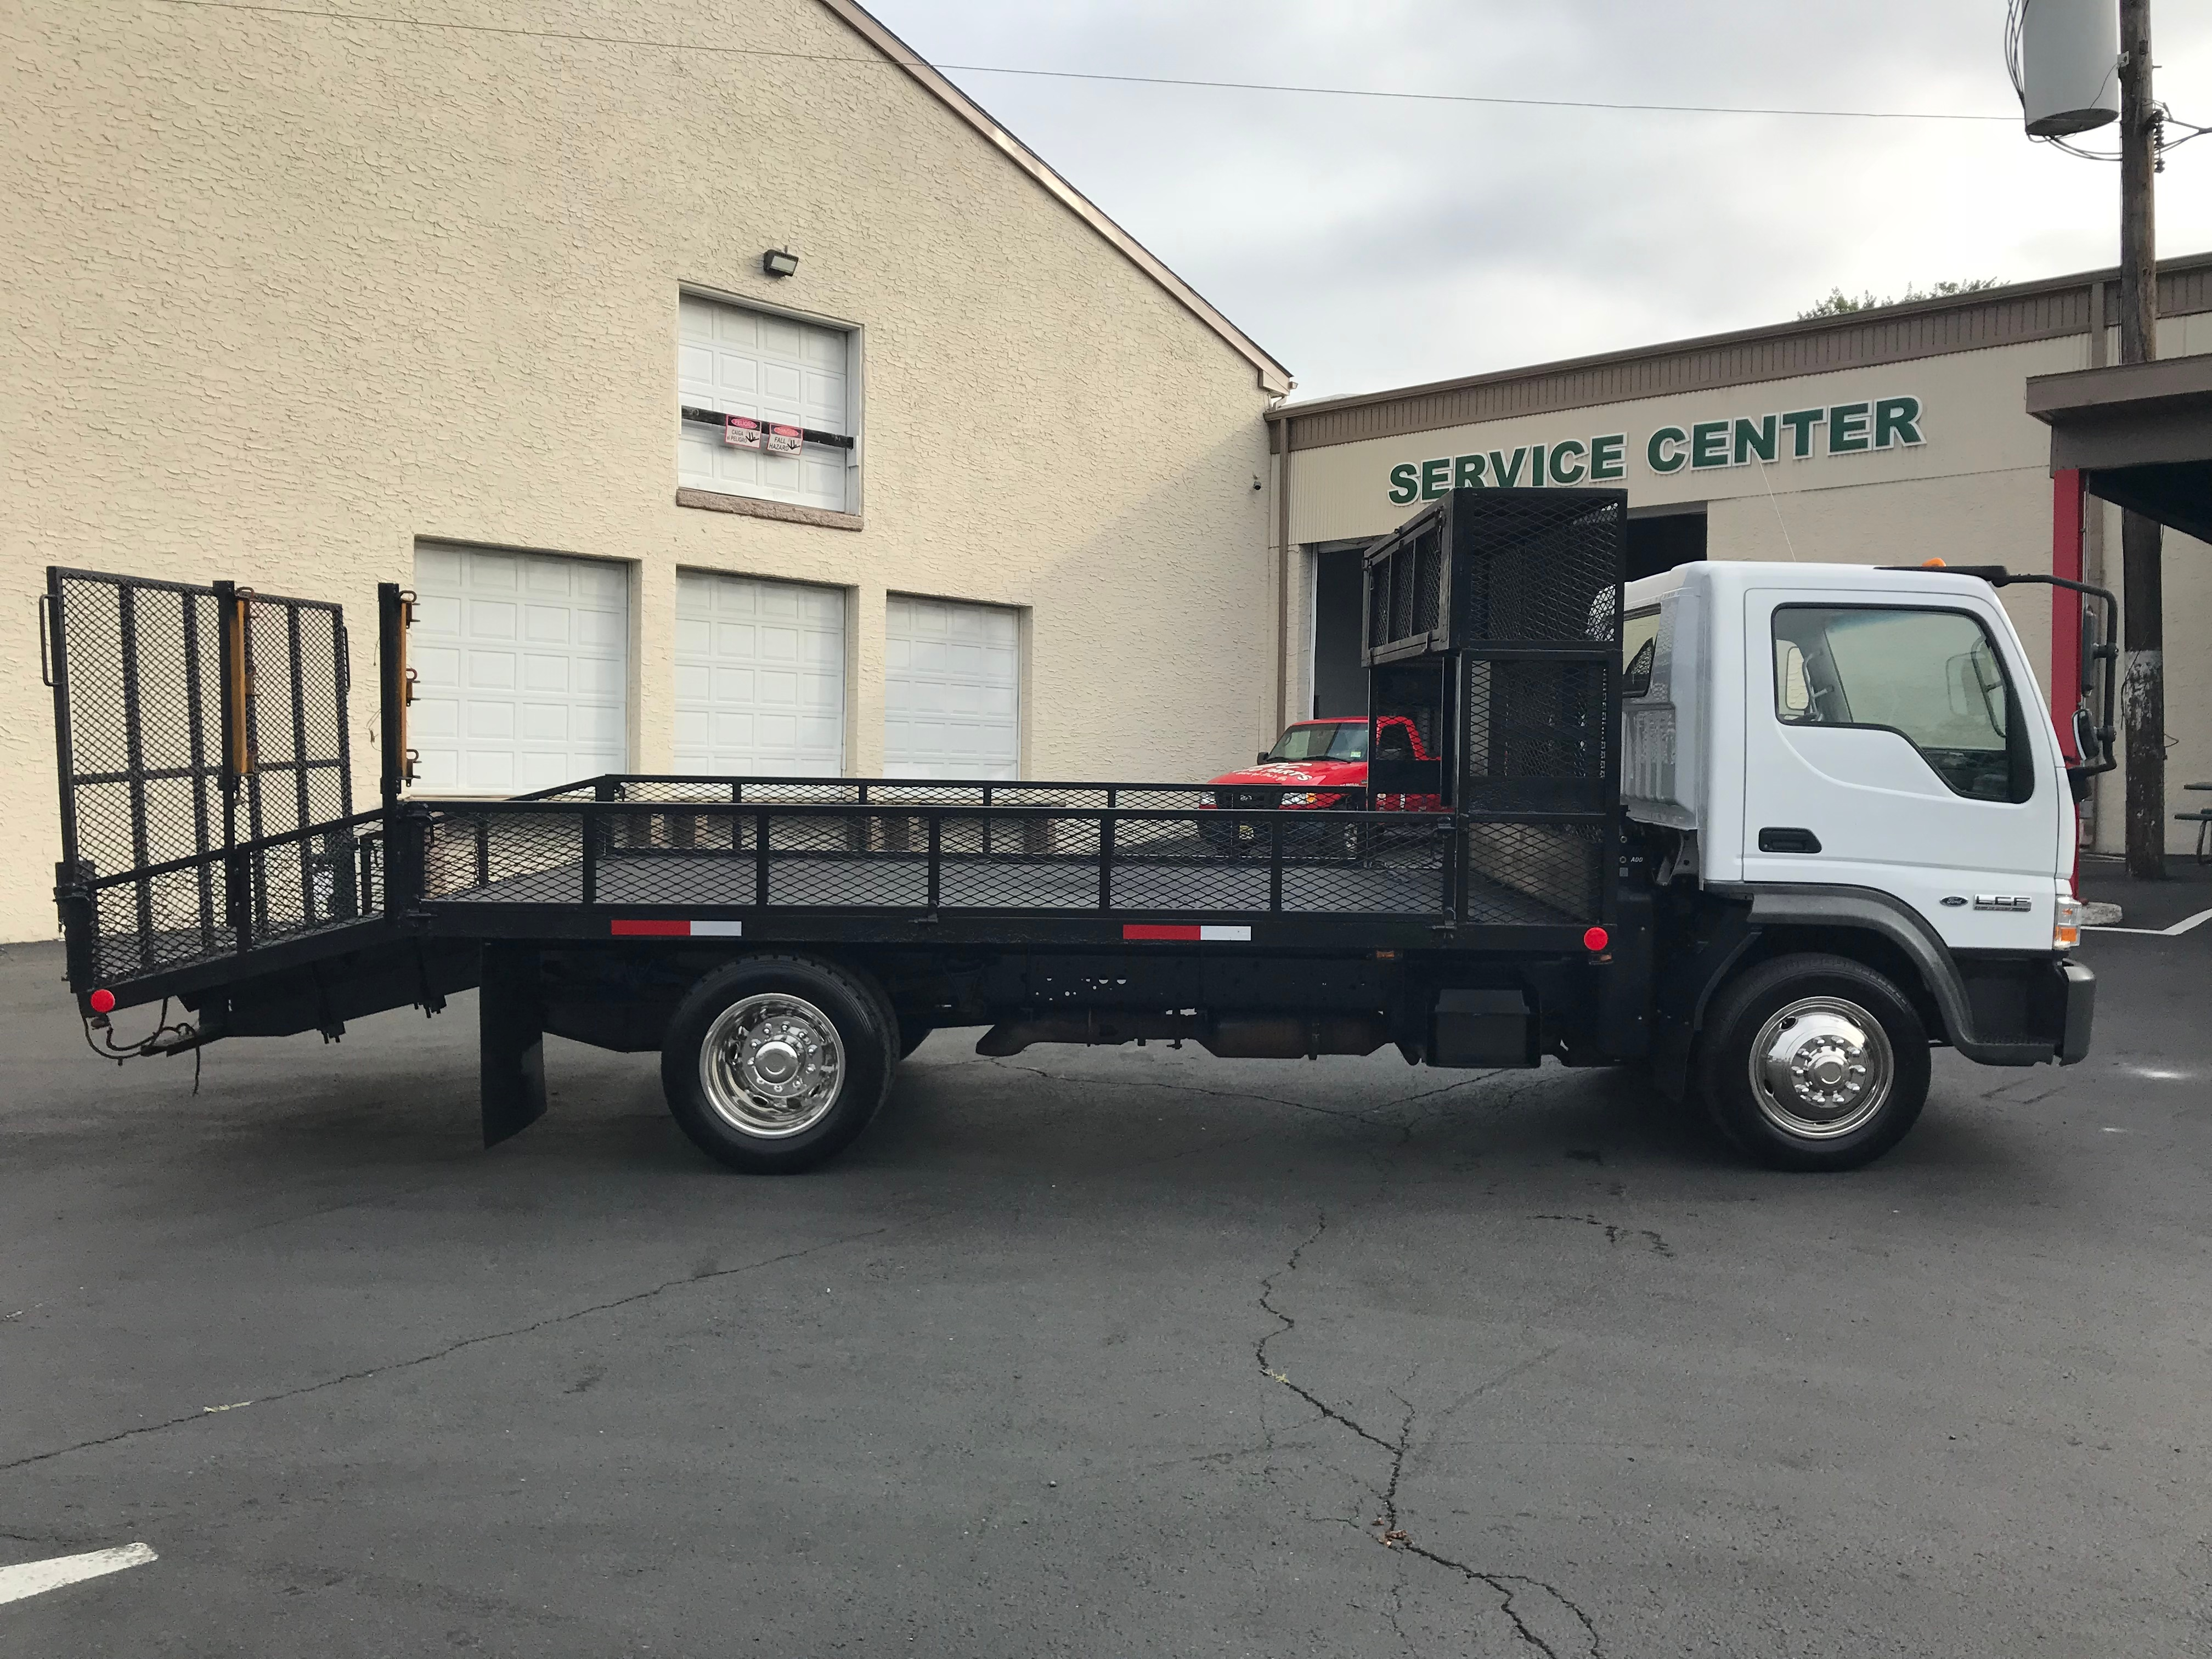 USED 2009 FORD LCF LANDSCAPE TRUCK #597606